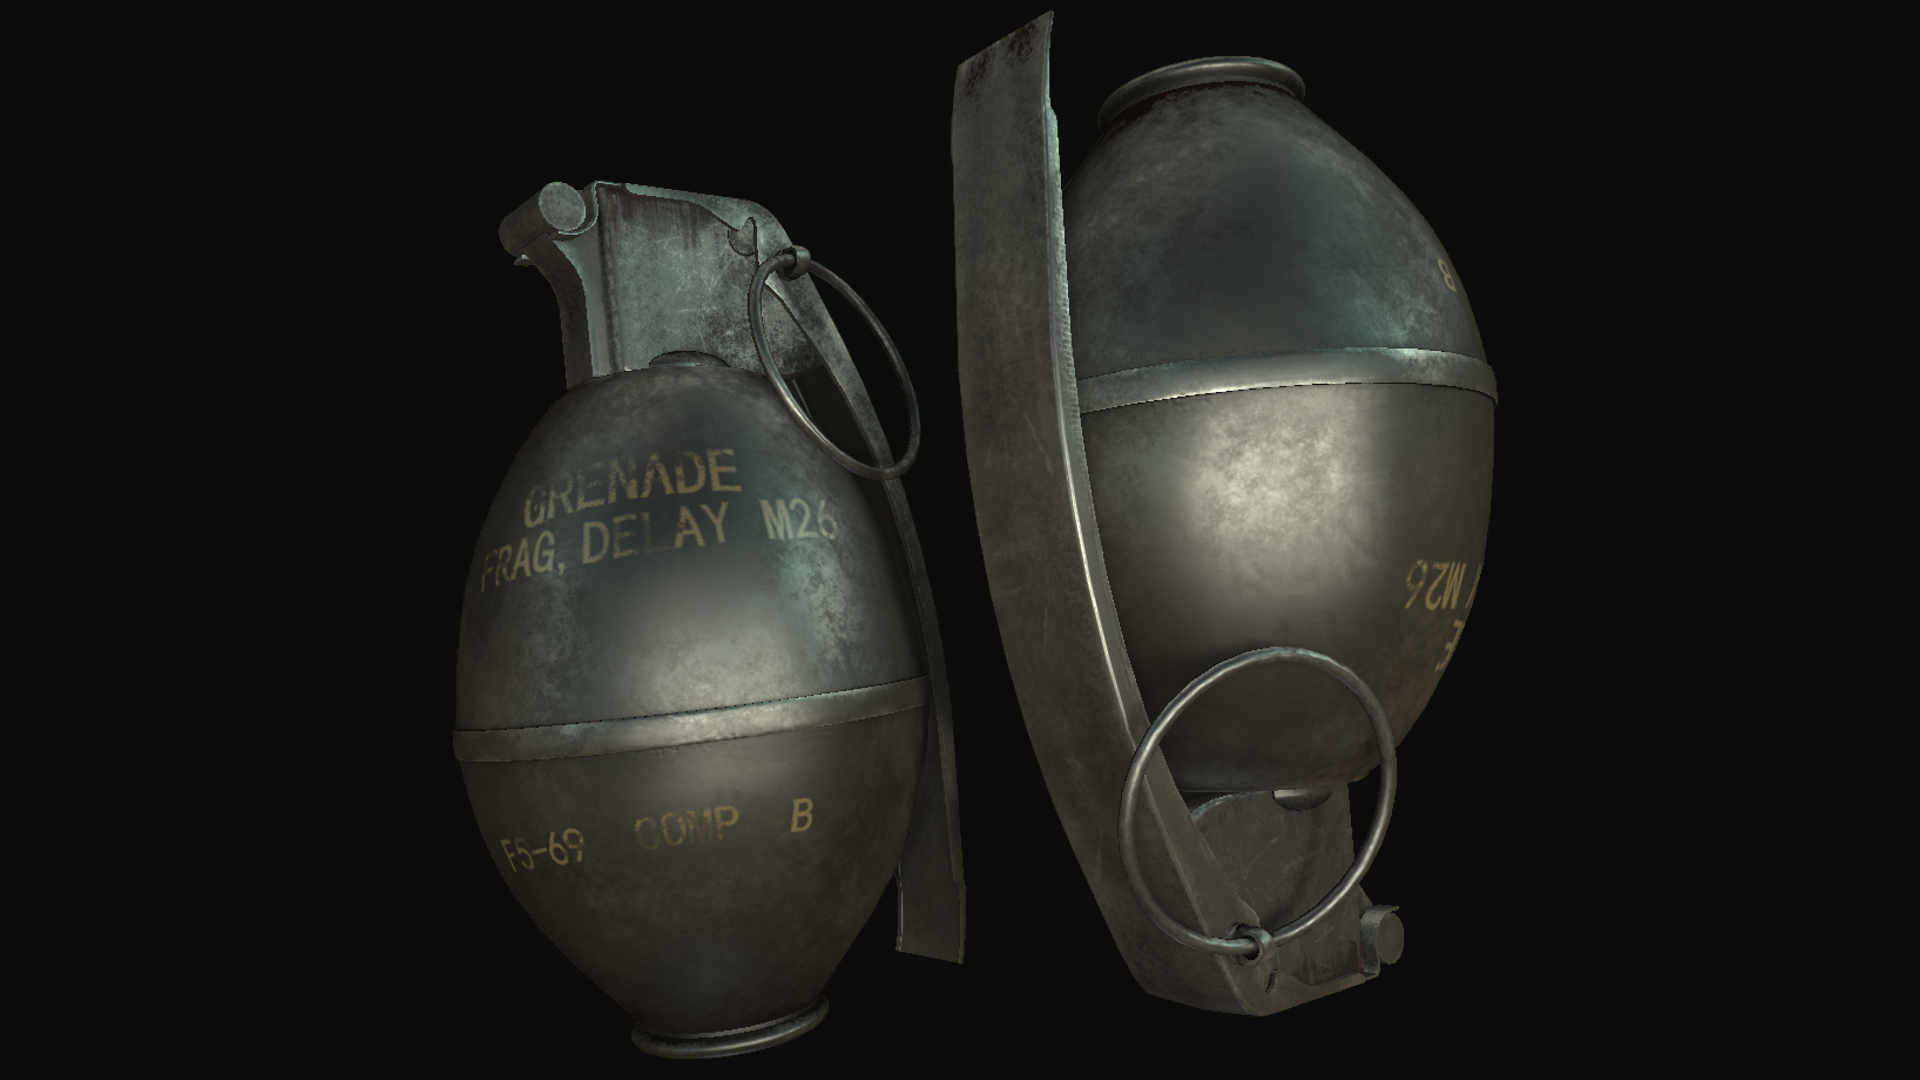 M26 Fragmentation Grenade Replacer